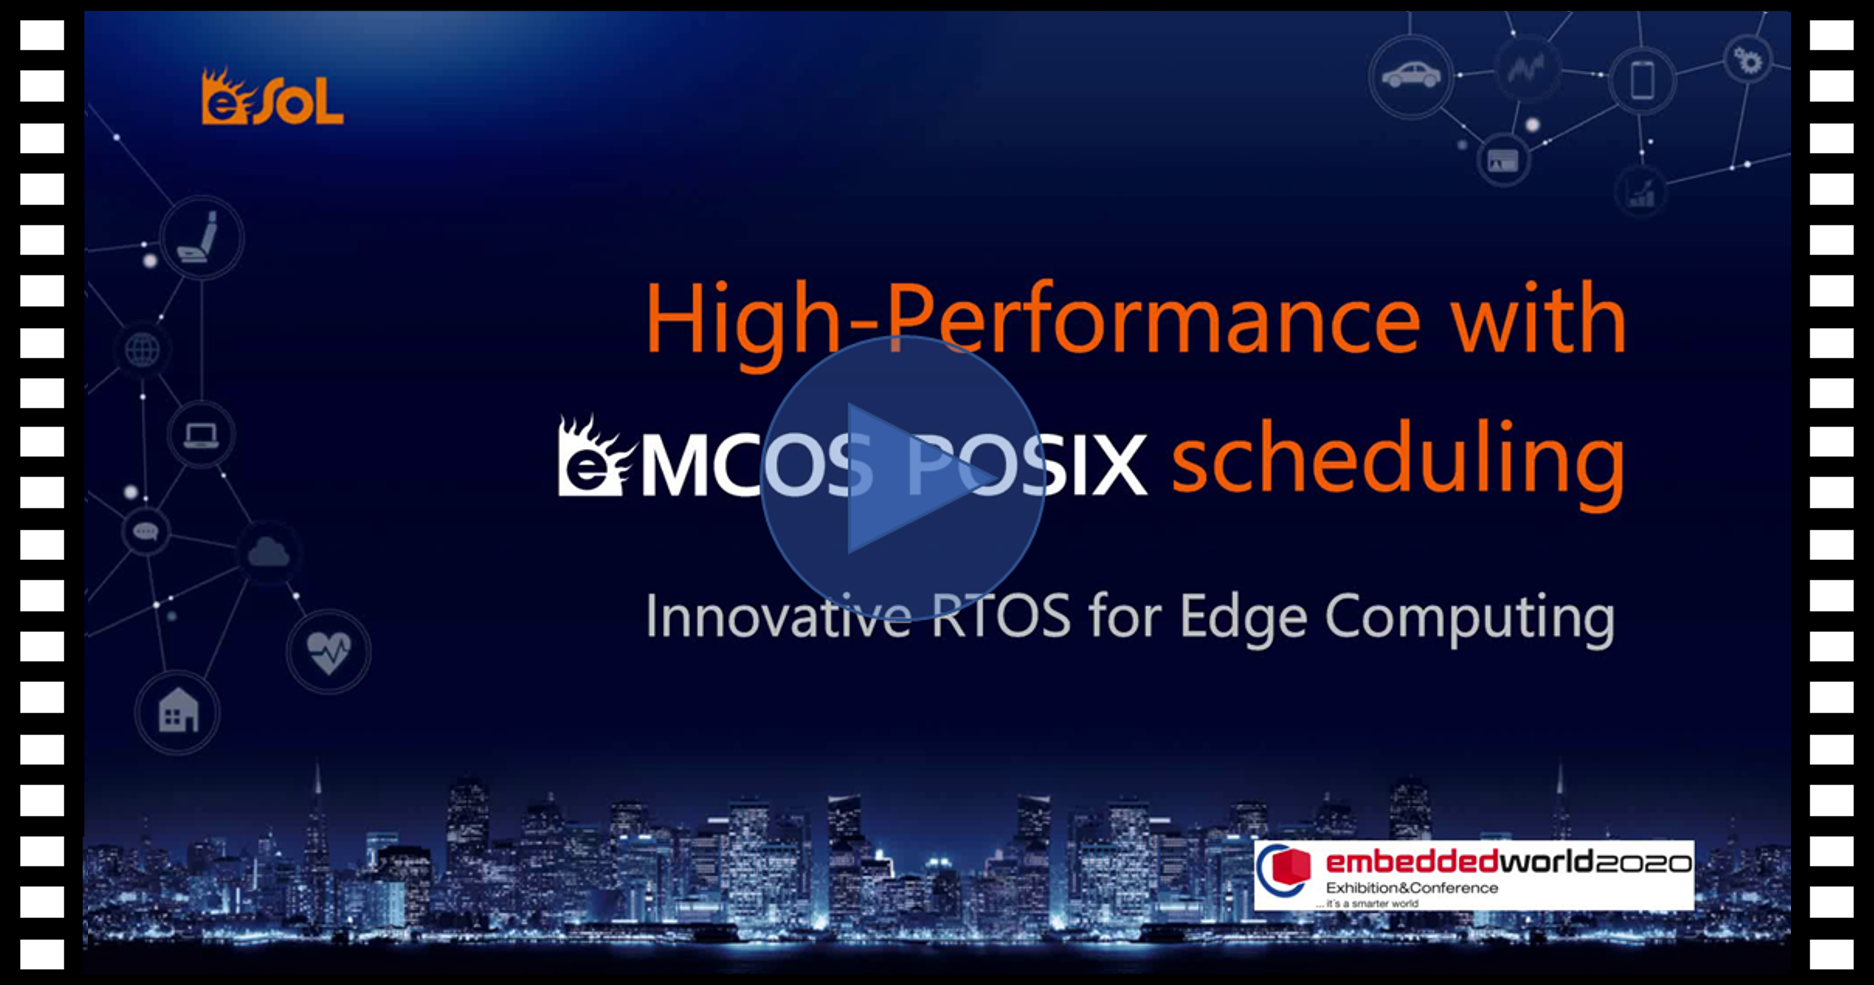 eMCOS multi-kernel architecture shows 30 times faster performance than Linux.